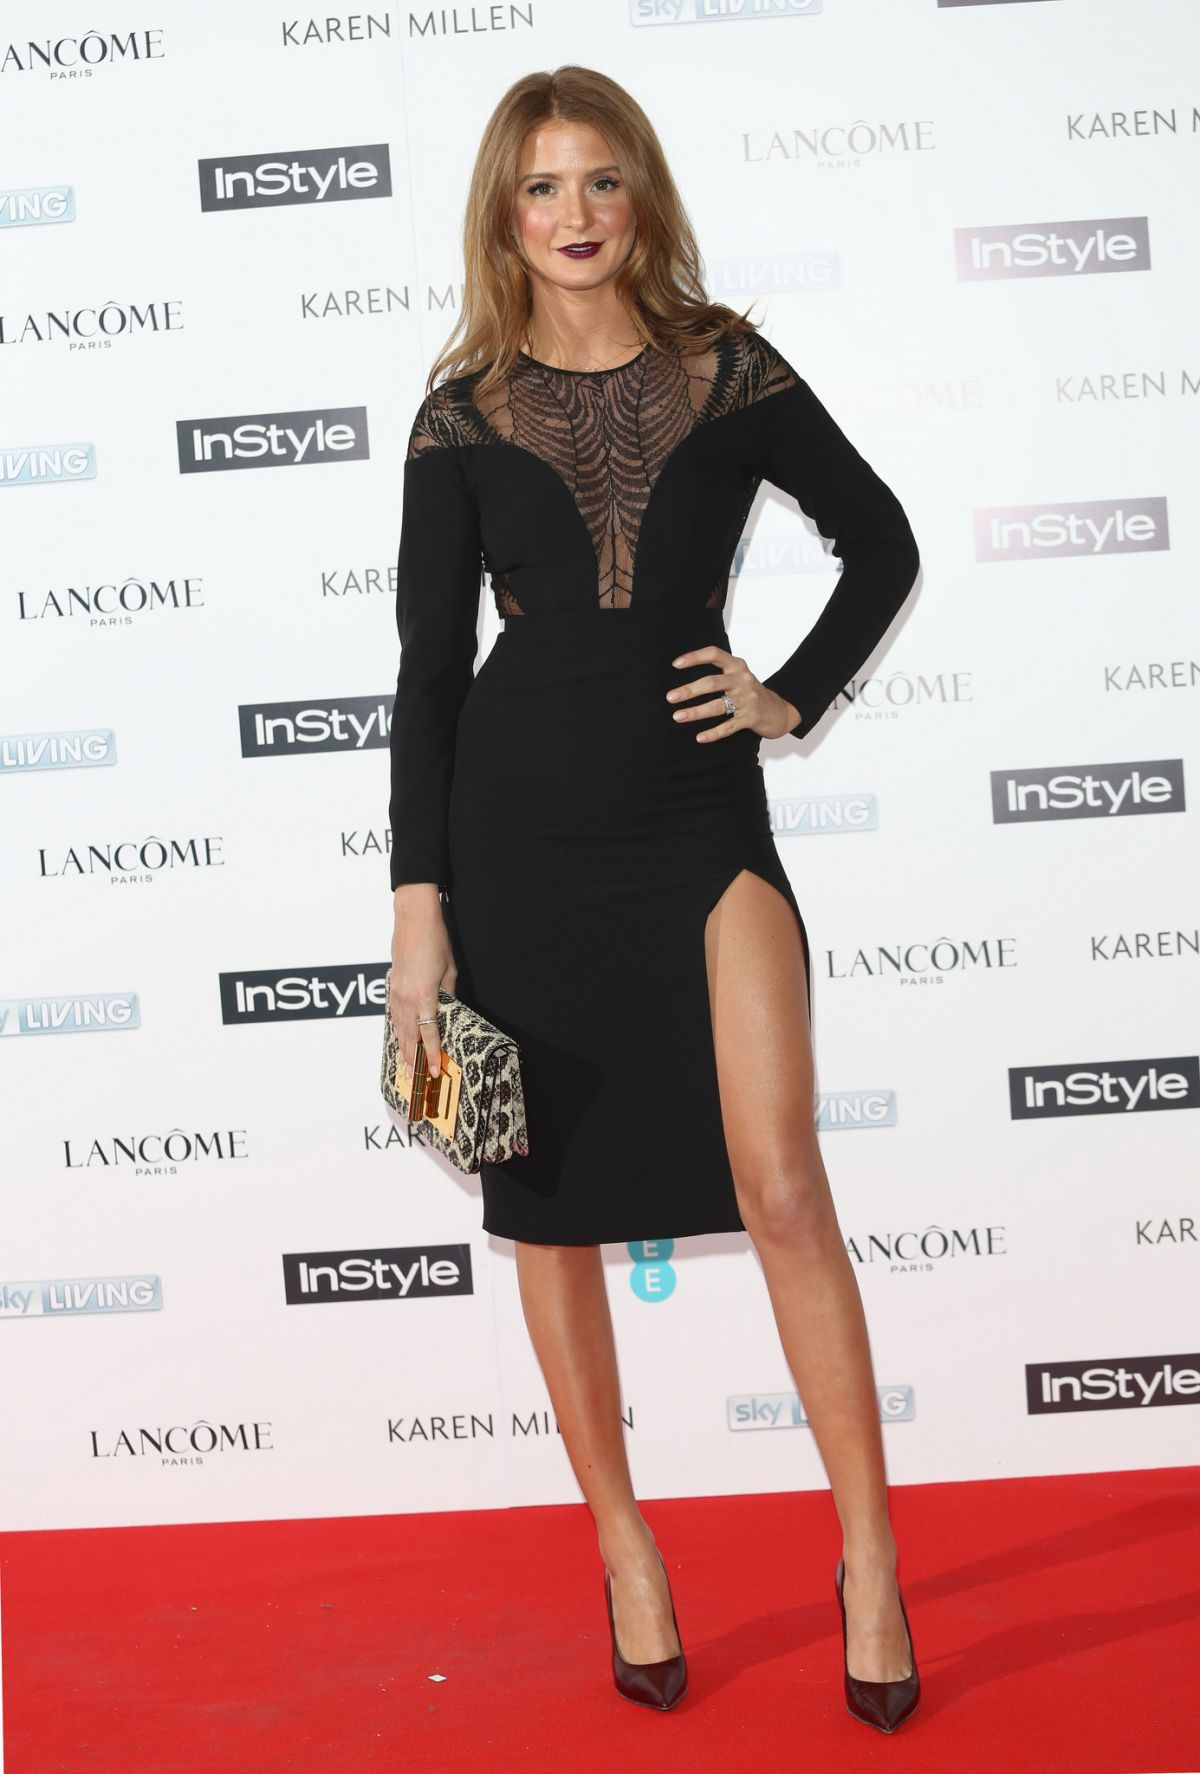 MILLIE MACKINTOSH at Pre-bafta Instyle and EE Rising Star Bash in London